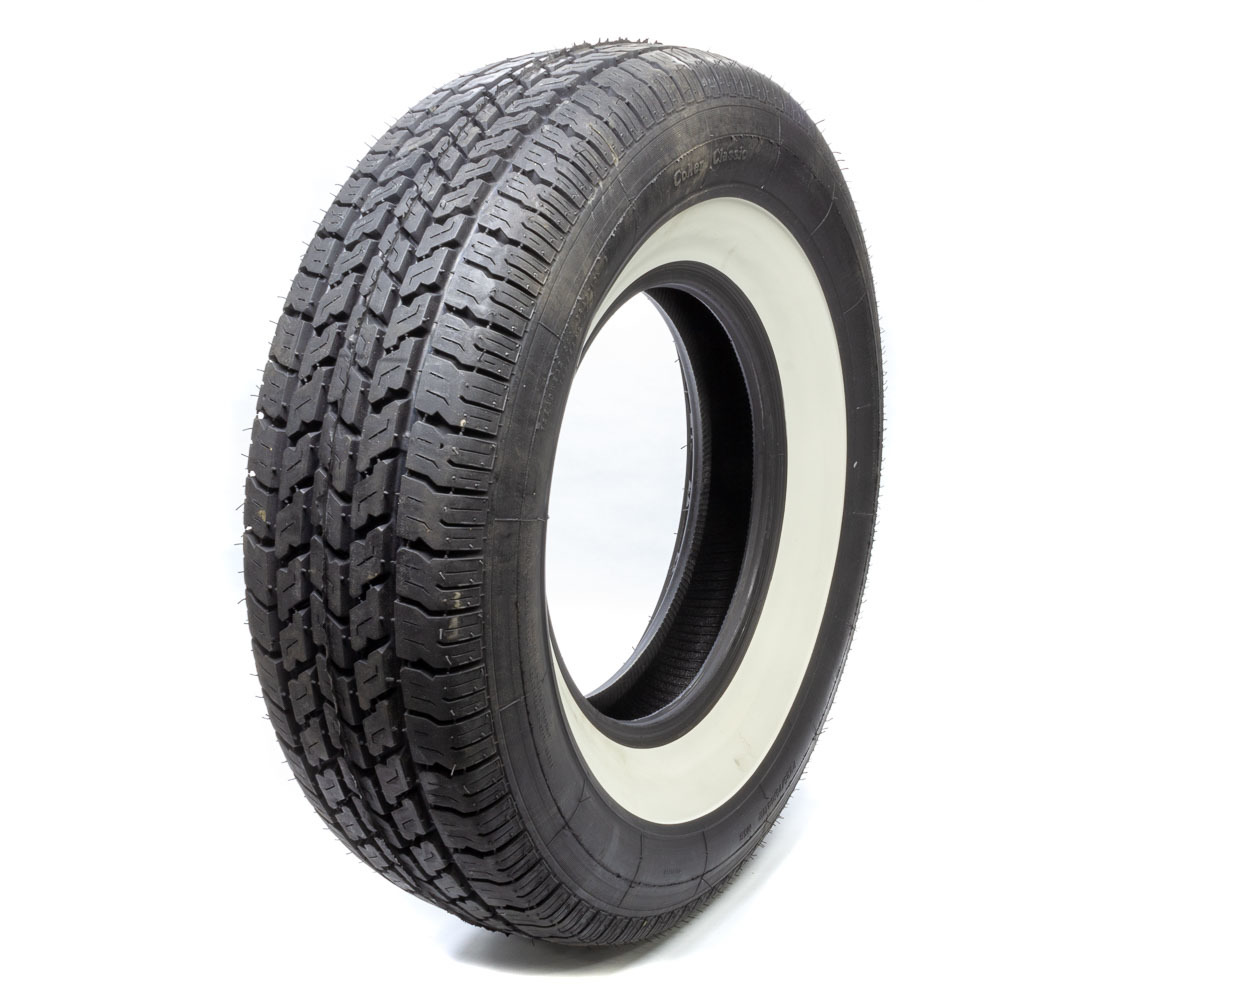 P225/75R14 Coker Tire 2-1/2in White Wall